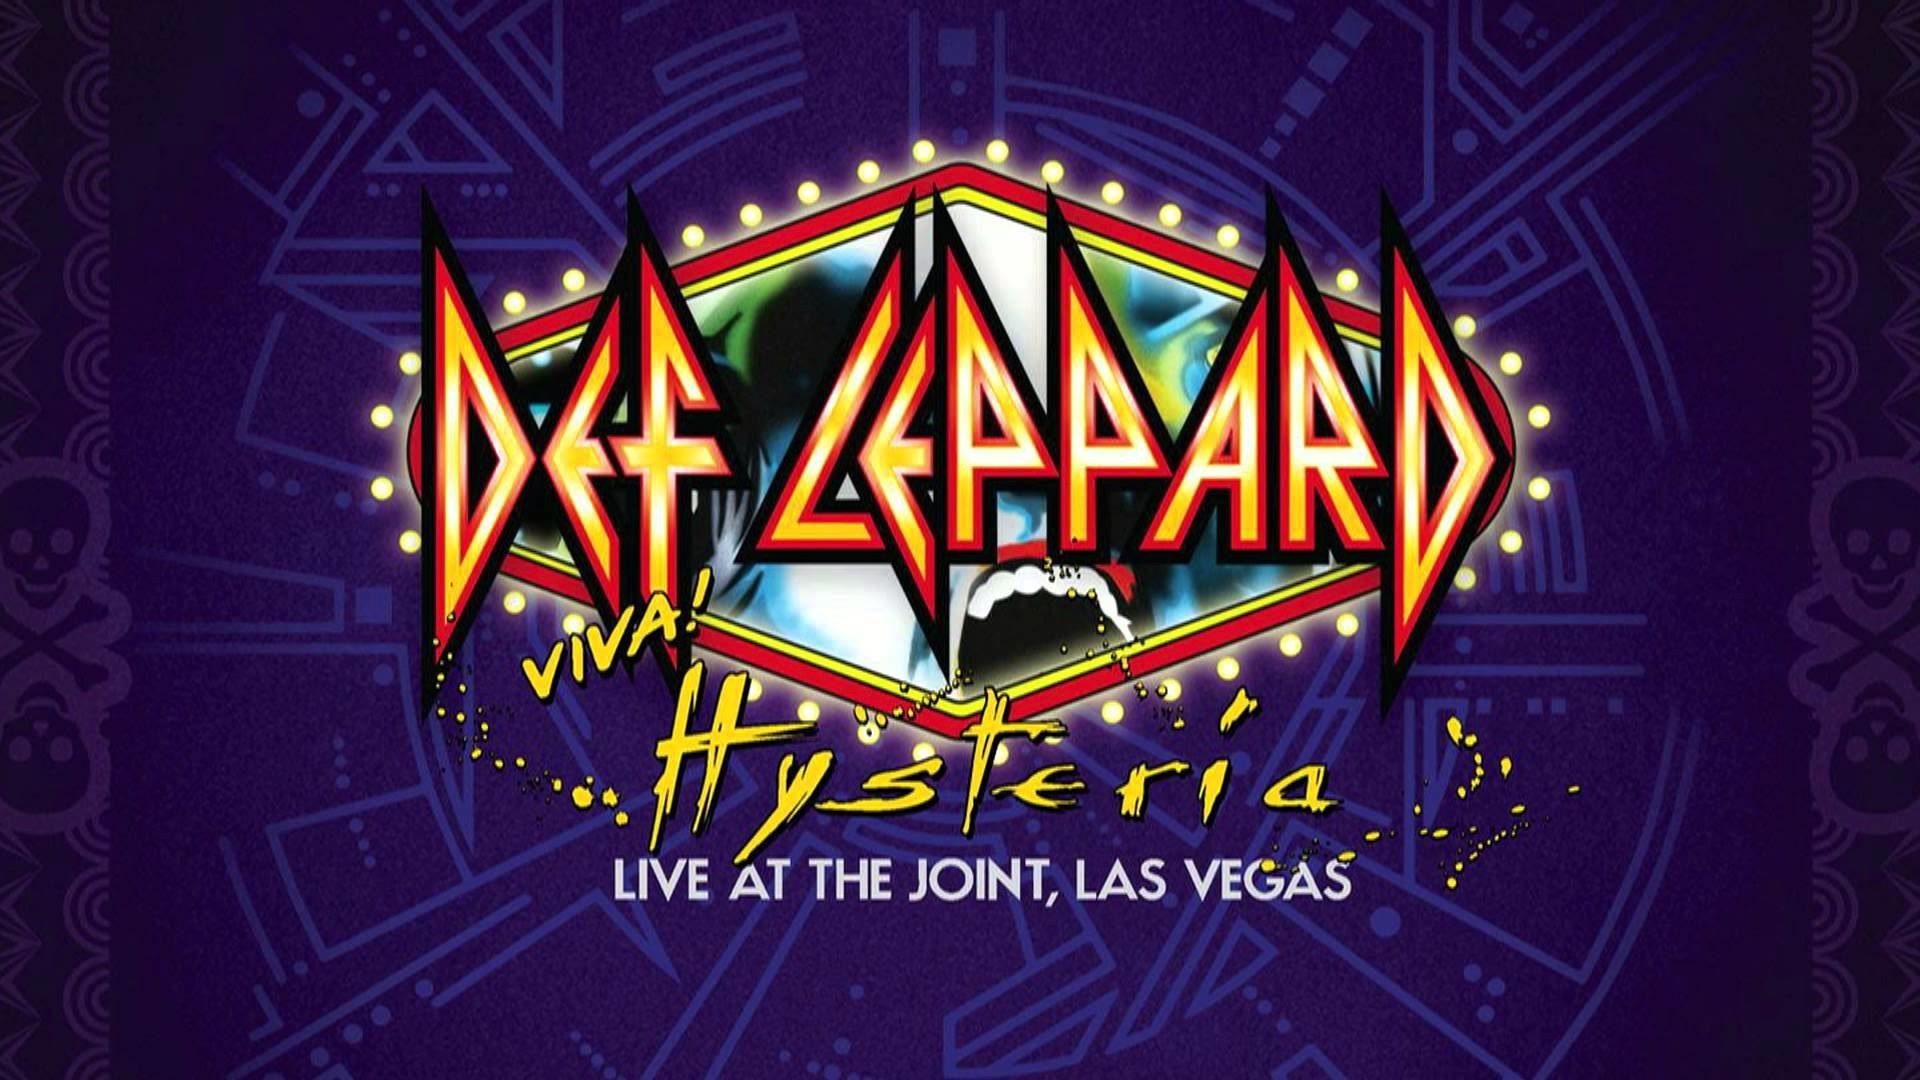 Res: 1920x1080, Def Leppard Wallpapers 8 - 1920 X 1080